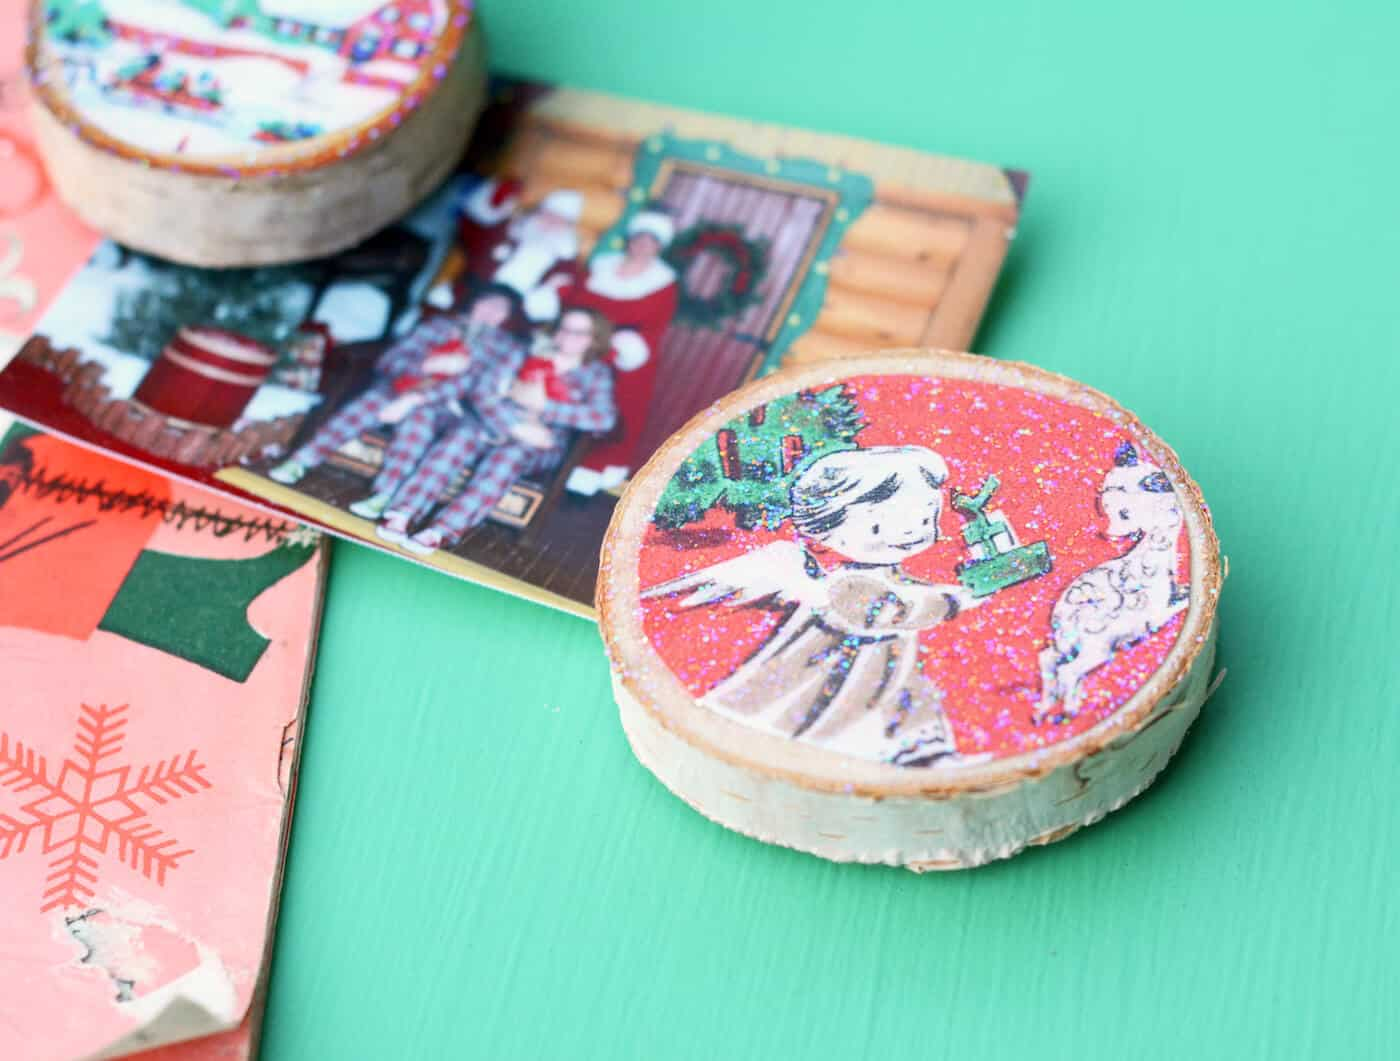 These Christmas card magnets are SO easy to make and are a perfect gift idea! Use your own cards or the free printable included.